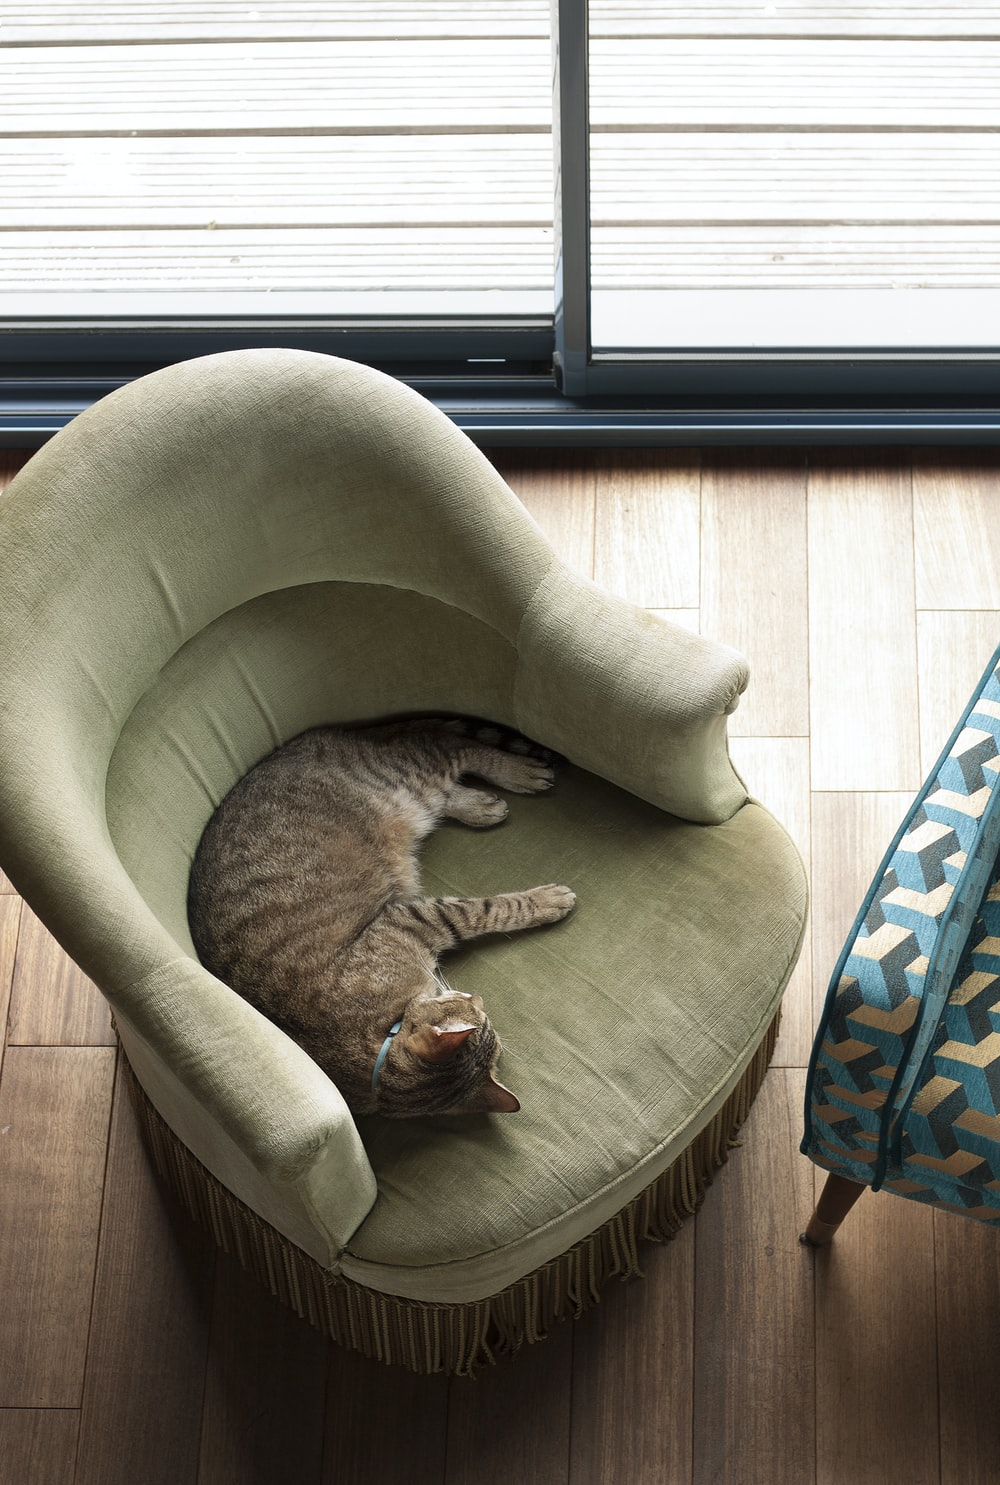 brown tabby cat lying on brown and blue pet bed